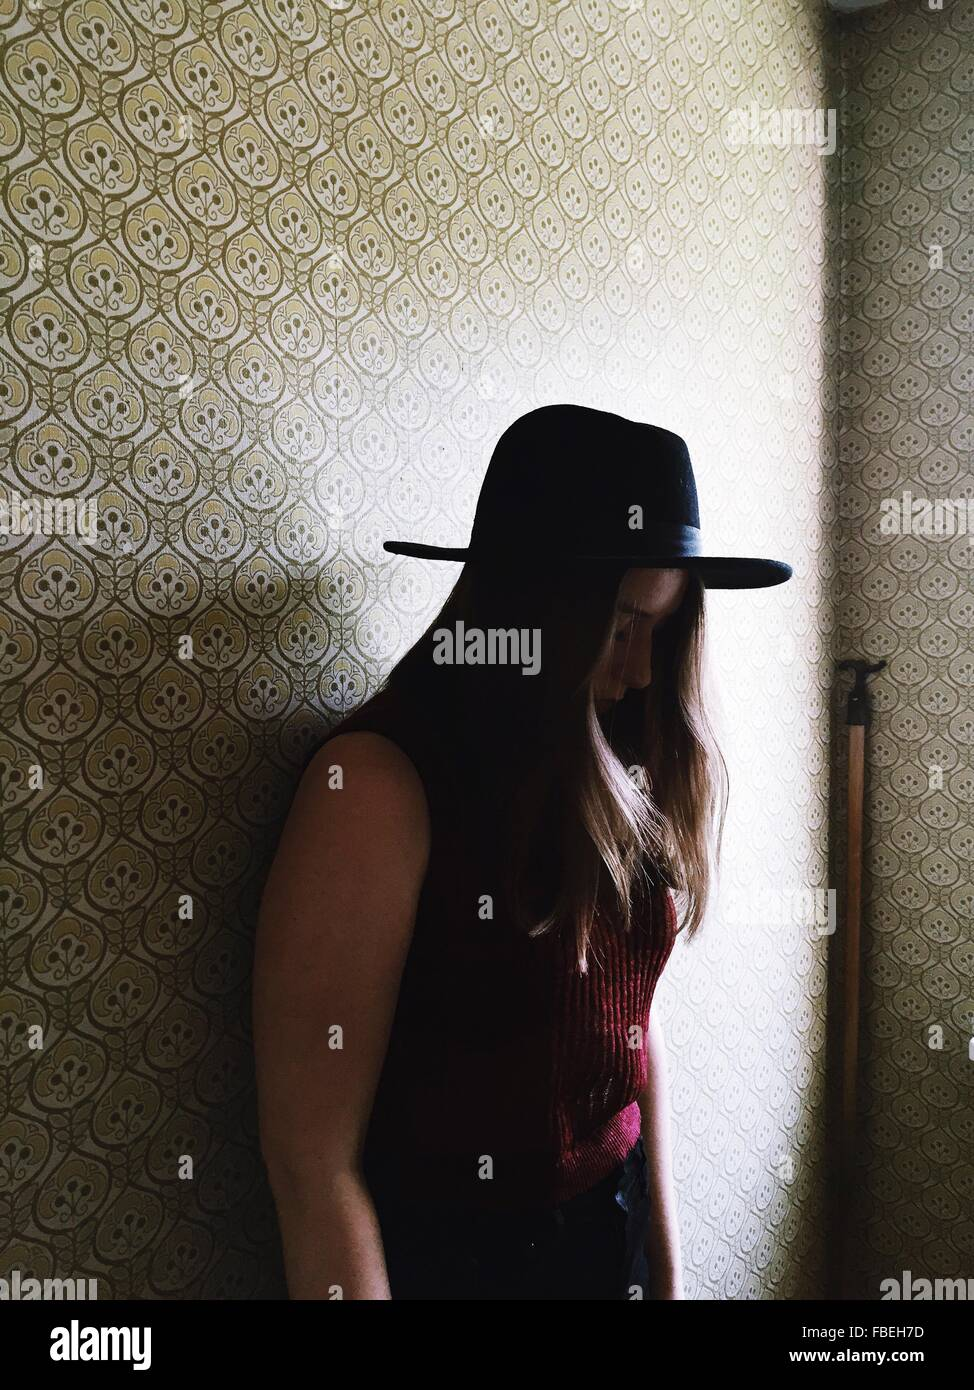 Side View Of Woman In Hat Standing Against Wall While Looking Down - Stock Image